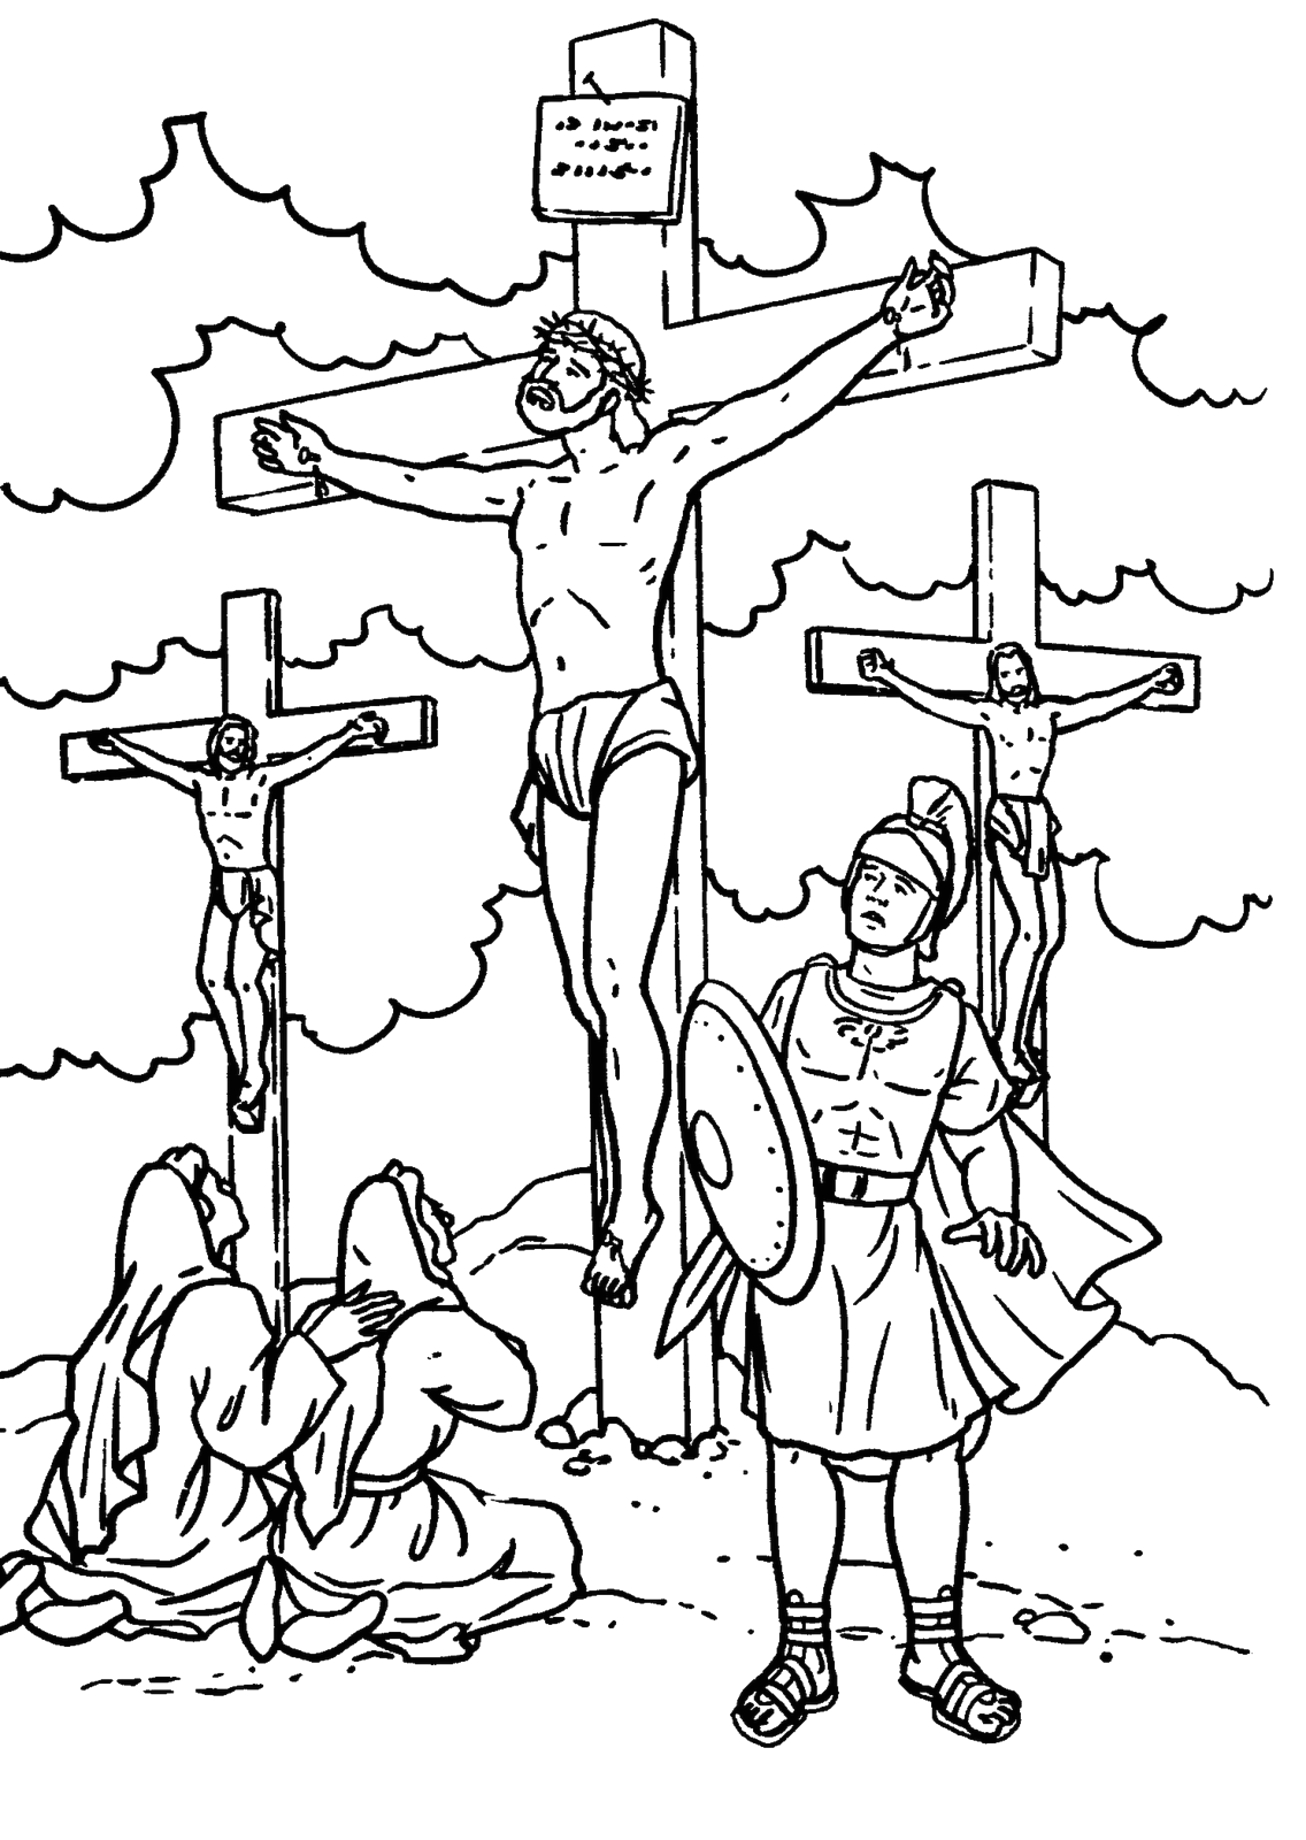 Free Coloring Pages Of Jesus On the Cross the Huddle Coloring Pages